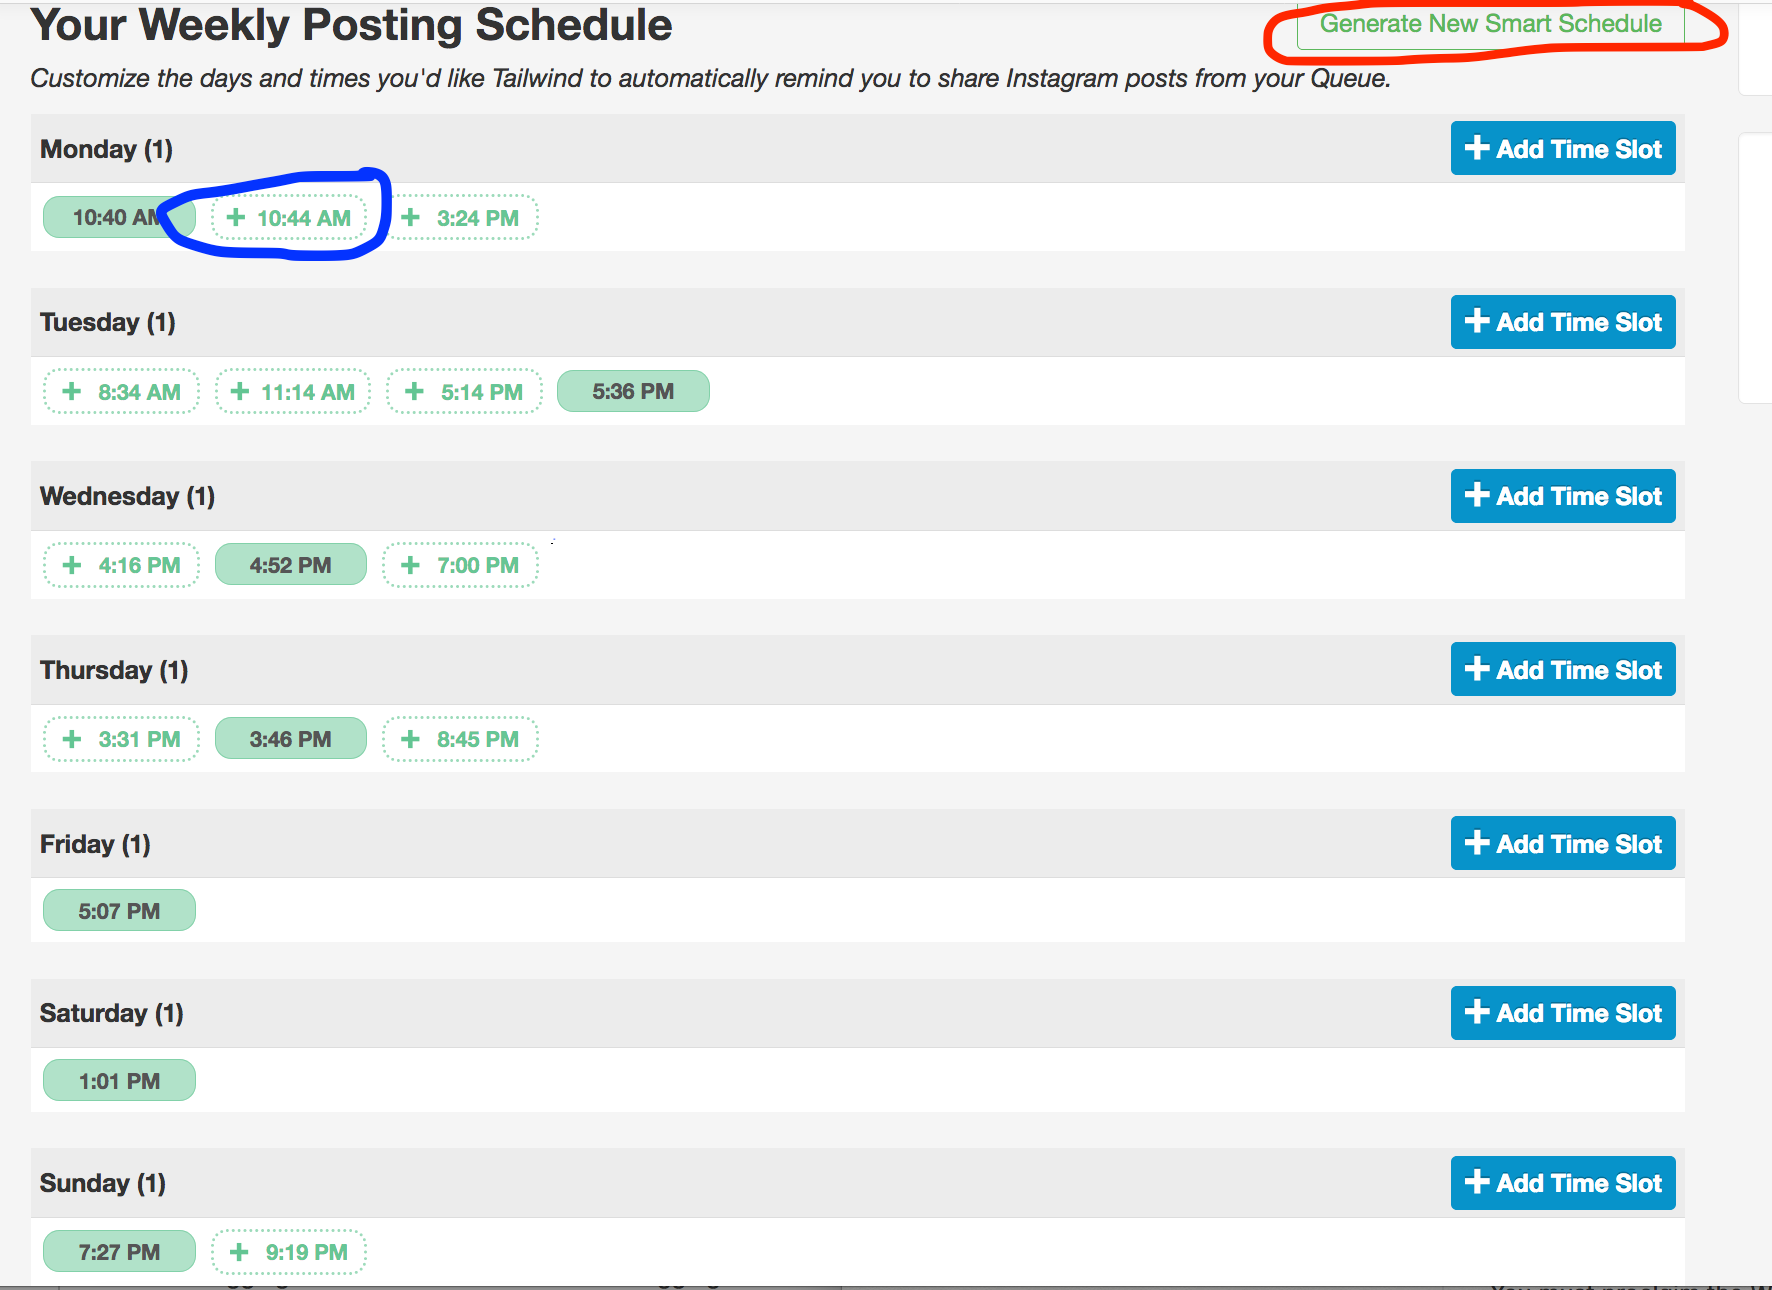 """In """"Your Schedule"""" you can see the time slots you're using in green. You can add """"suggested"""" time slots (circled in blue) or generate a new smart schedule (circled in red)."""